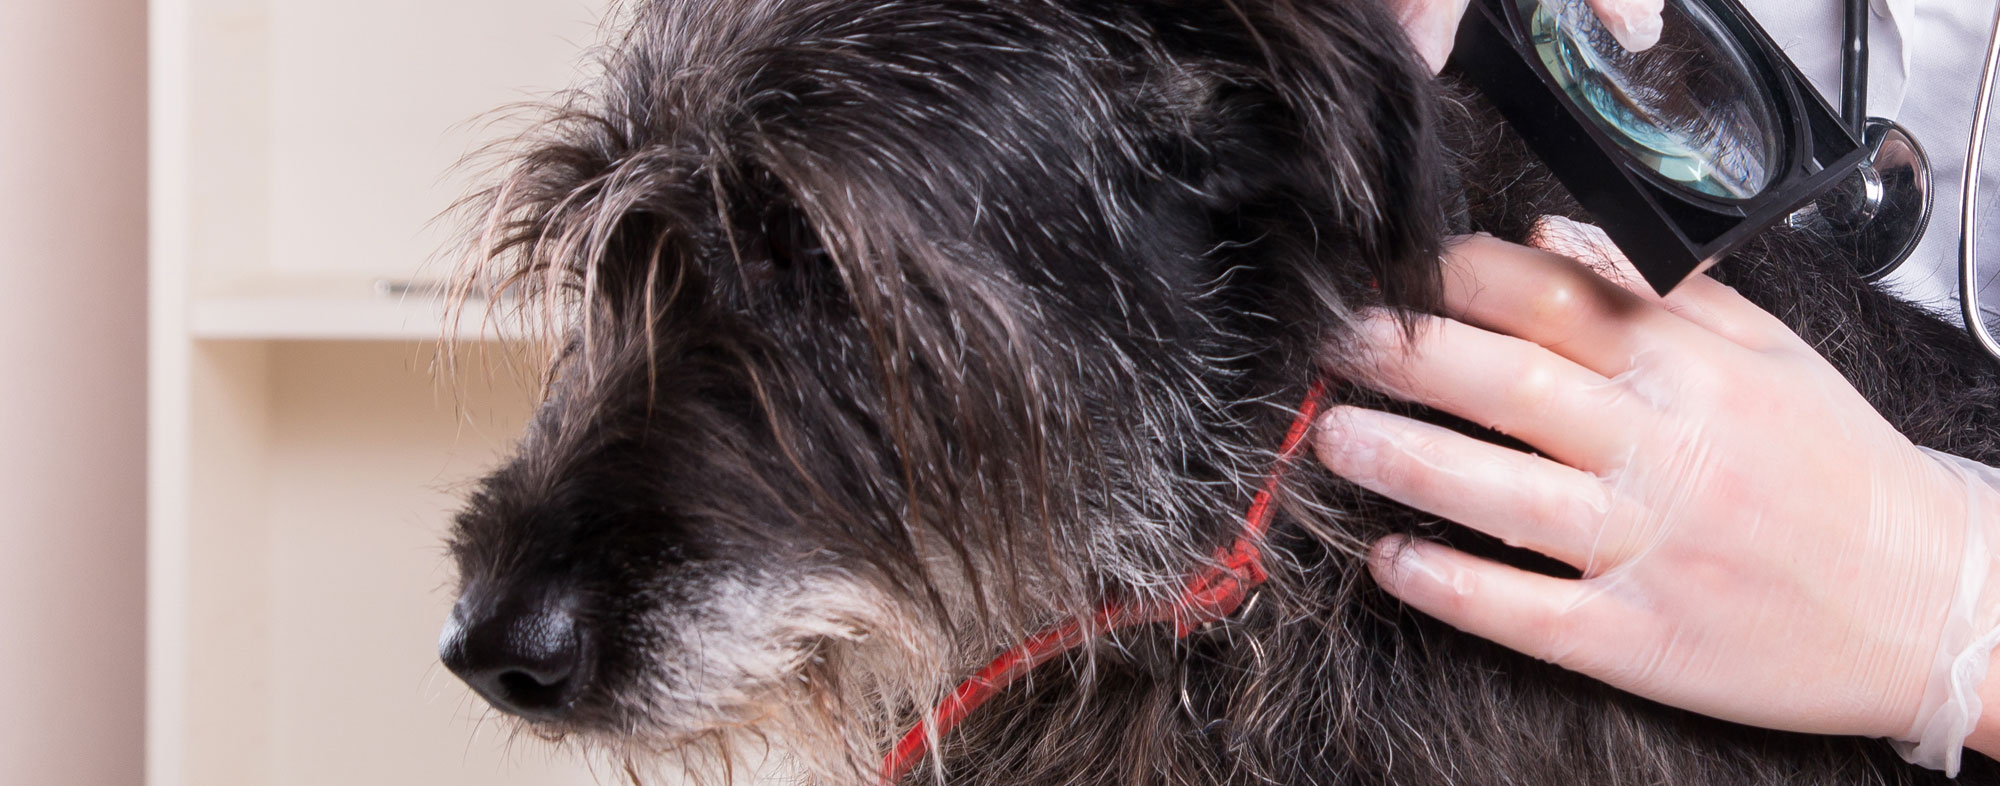 Worms in a dog's poop likely points to a tapeworm infection